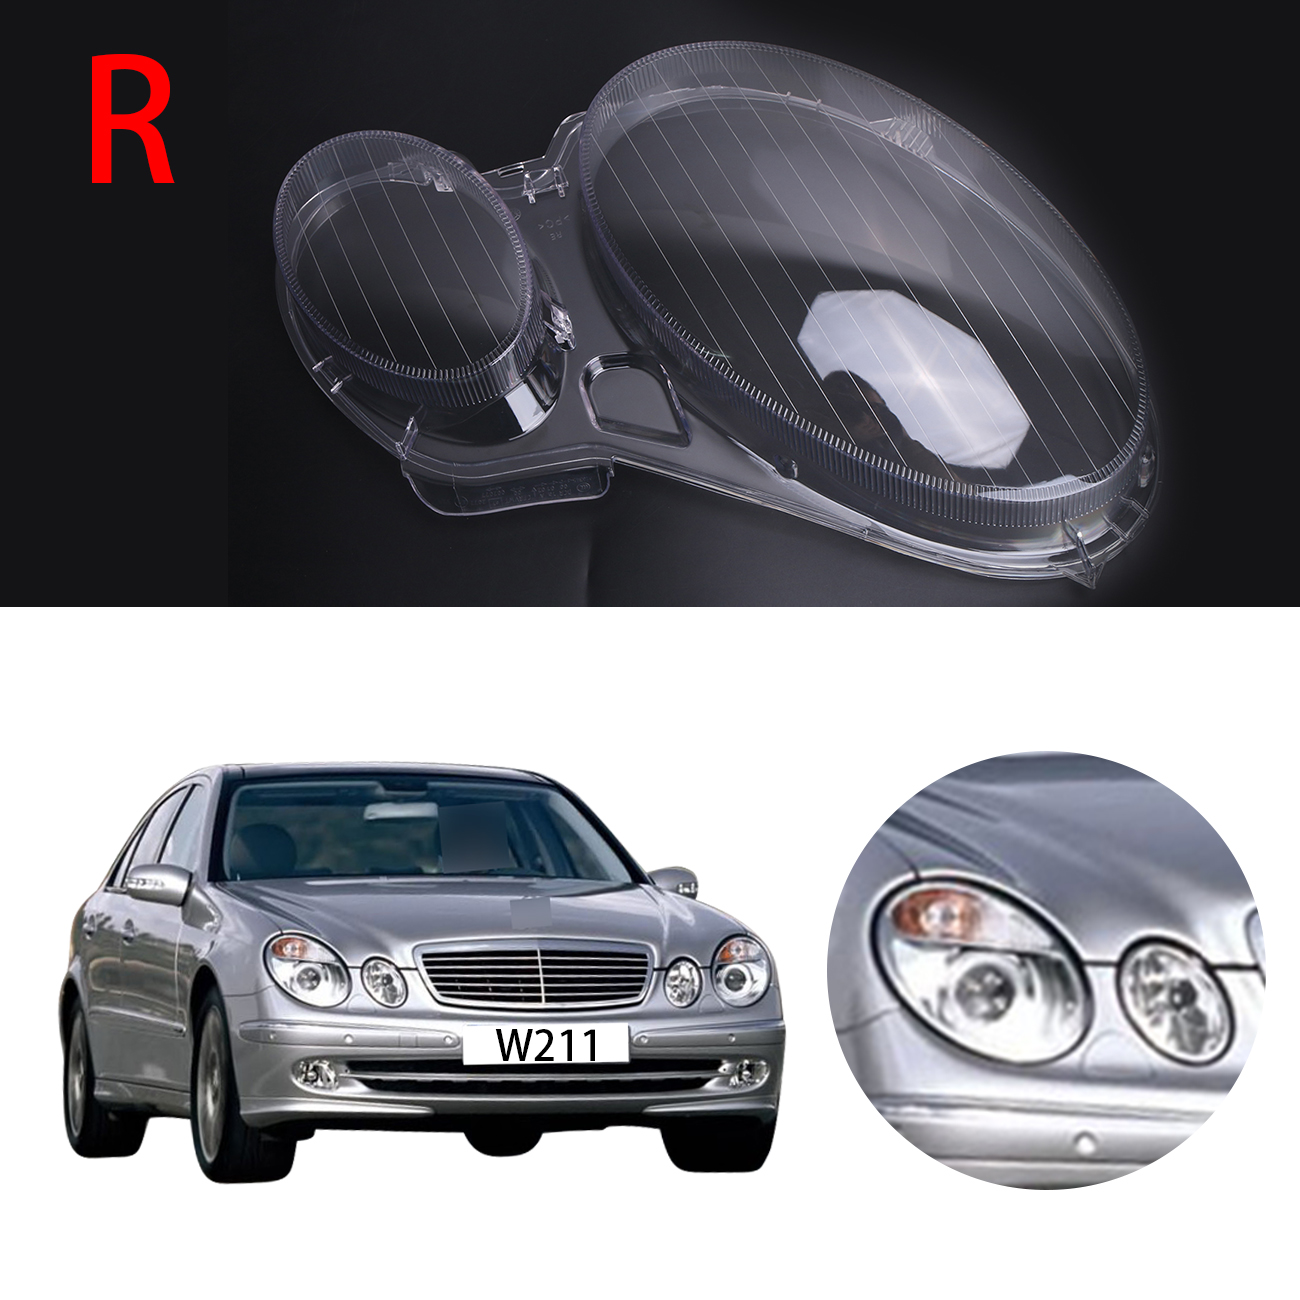 Right Transparent Housing Headlight Lens Cover Lamp Assembly For Mercedes Benz E-CLASS W211 E320 E350 E300 2006 - 2008 #PD554-R